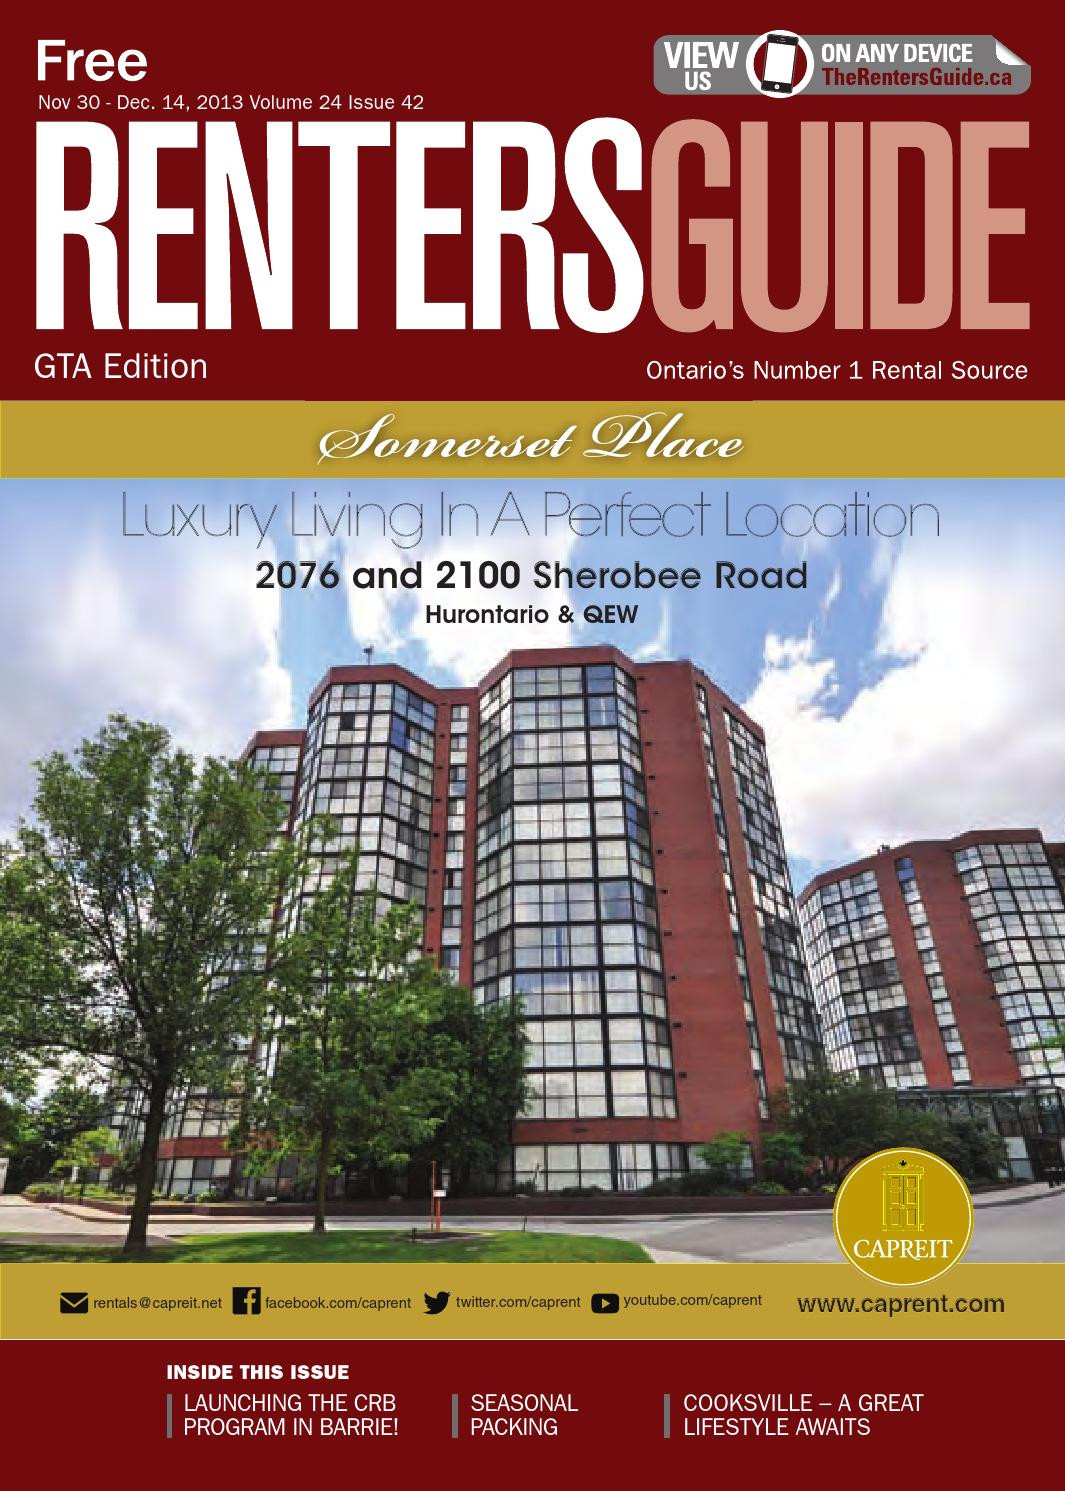 hardwood flooring victoria park and steeles of gta renters guide 30 nov 2013 by nexthome issuu in page 1